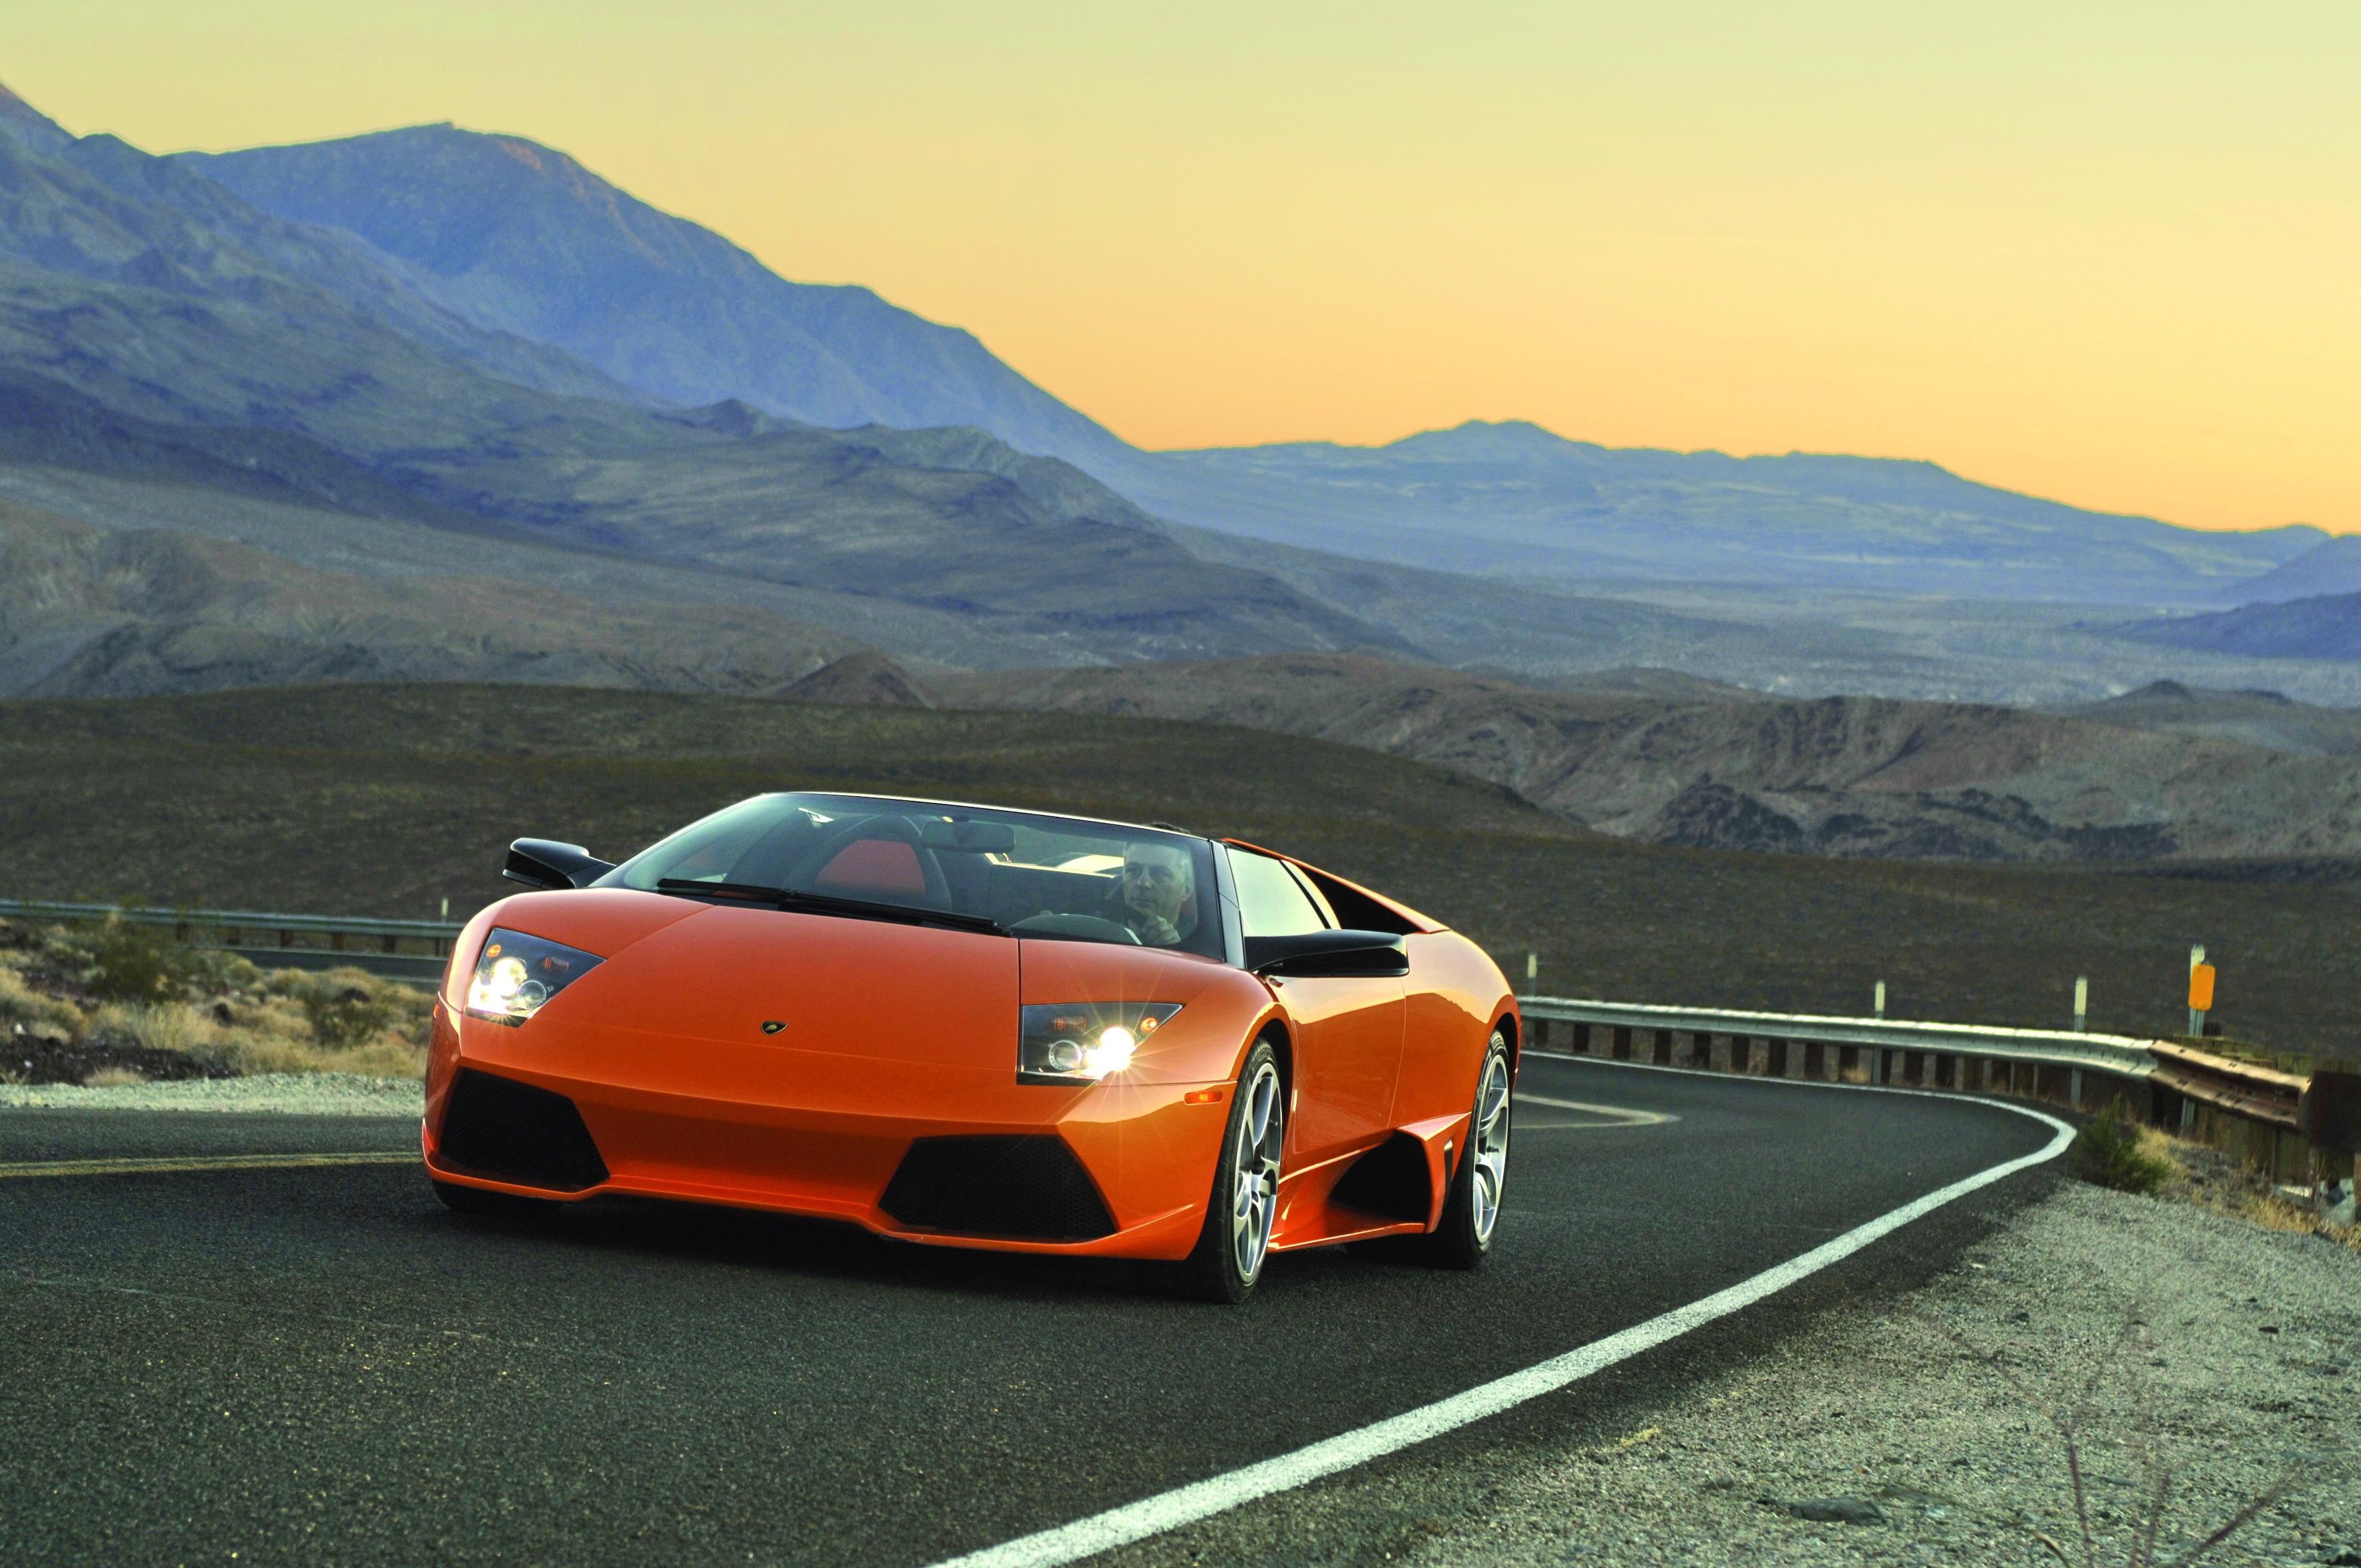 2008 Murcielago Lp640 Roadster Pricing Announced Top Speed